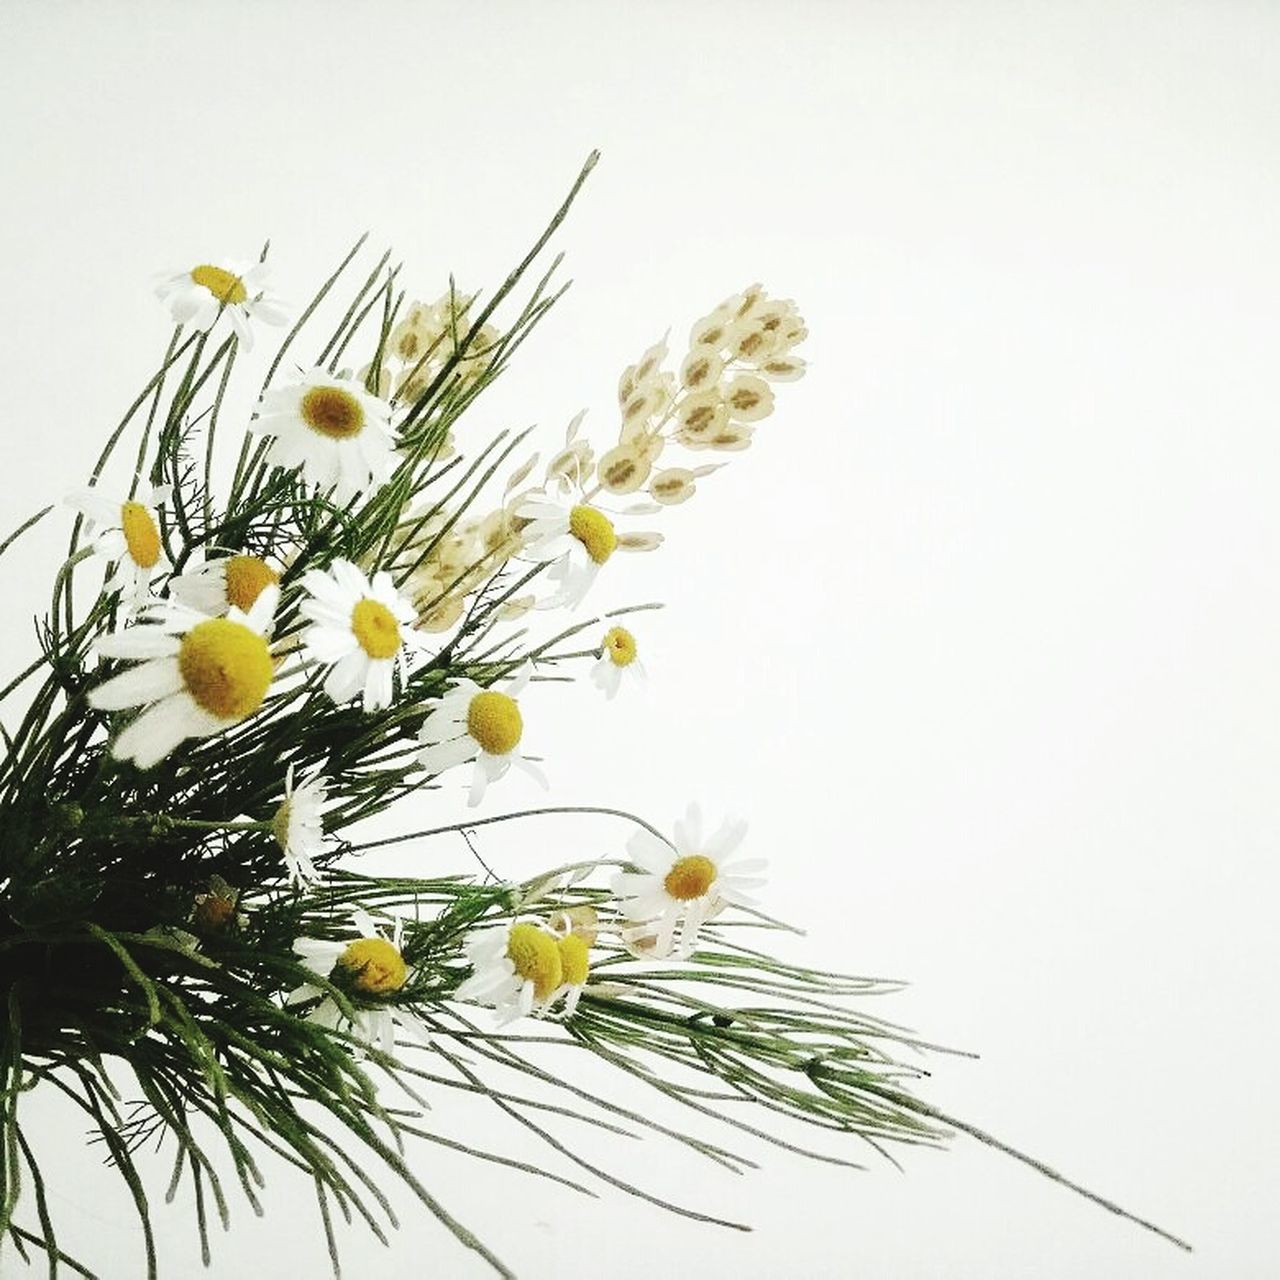 flower, white background, studio shot, freshness, yellow, no people, nature, close-up, growth, plant, fragility, flower head, beauty in nature, needle, day, outdoors